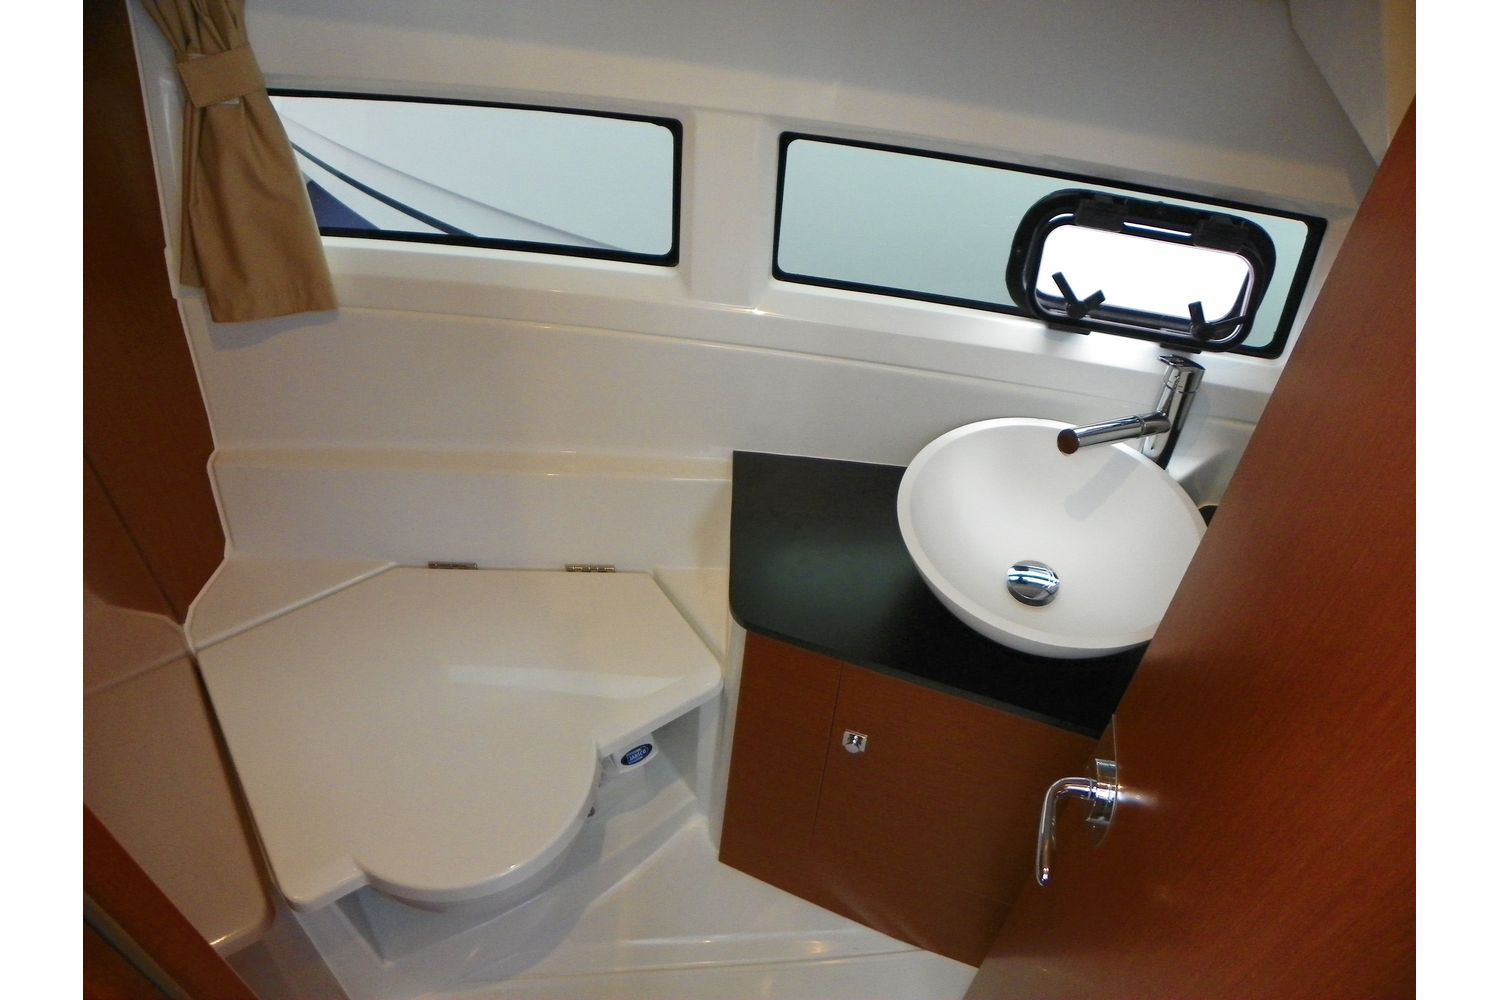 Jeanneau Merry Fisher 895 Offshore - toilet and shower compartment